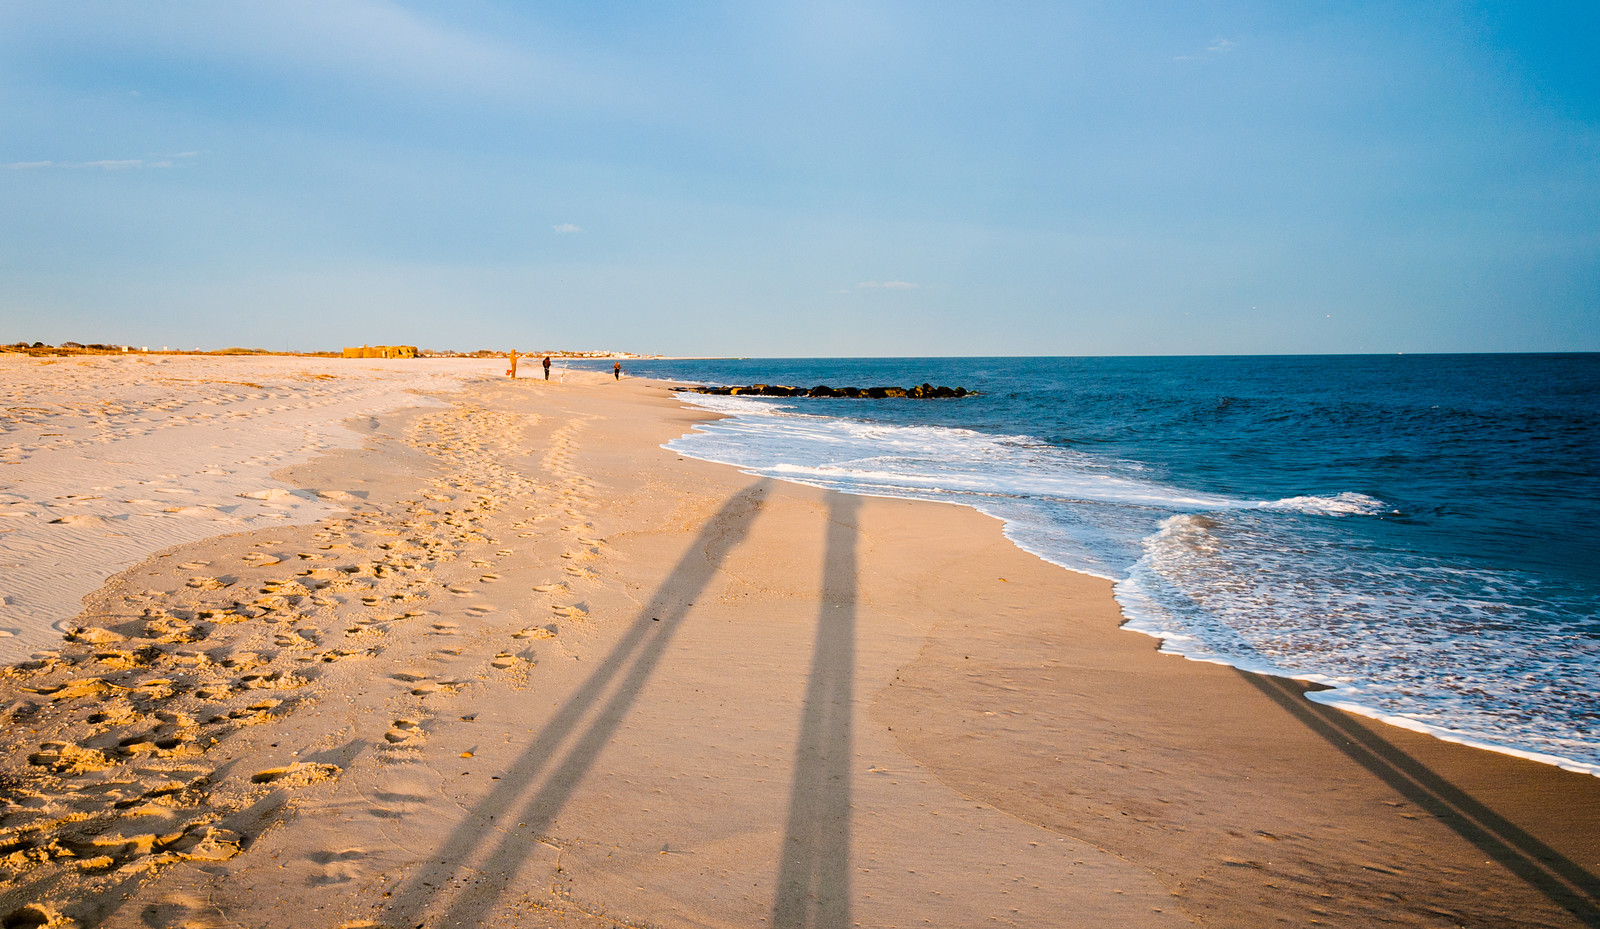 three people walking along the Beach on a sunny day with soft waves rolling onto the sand